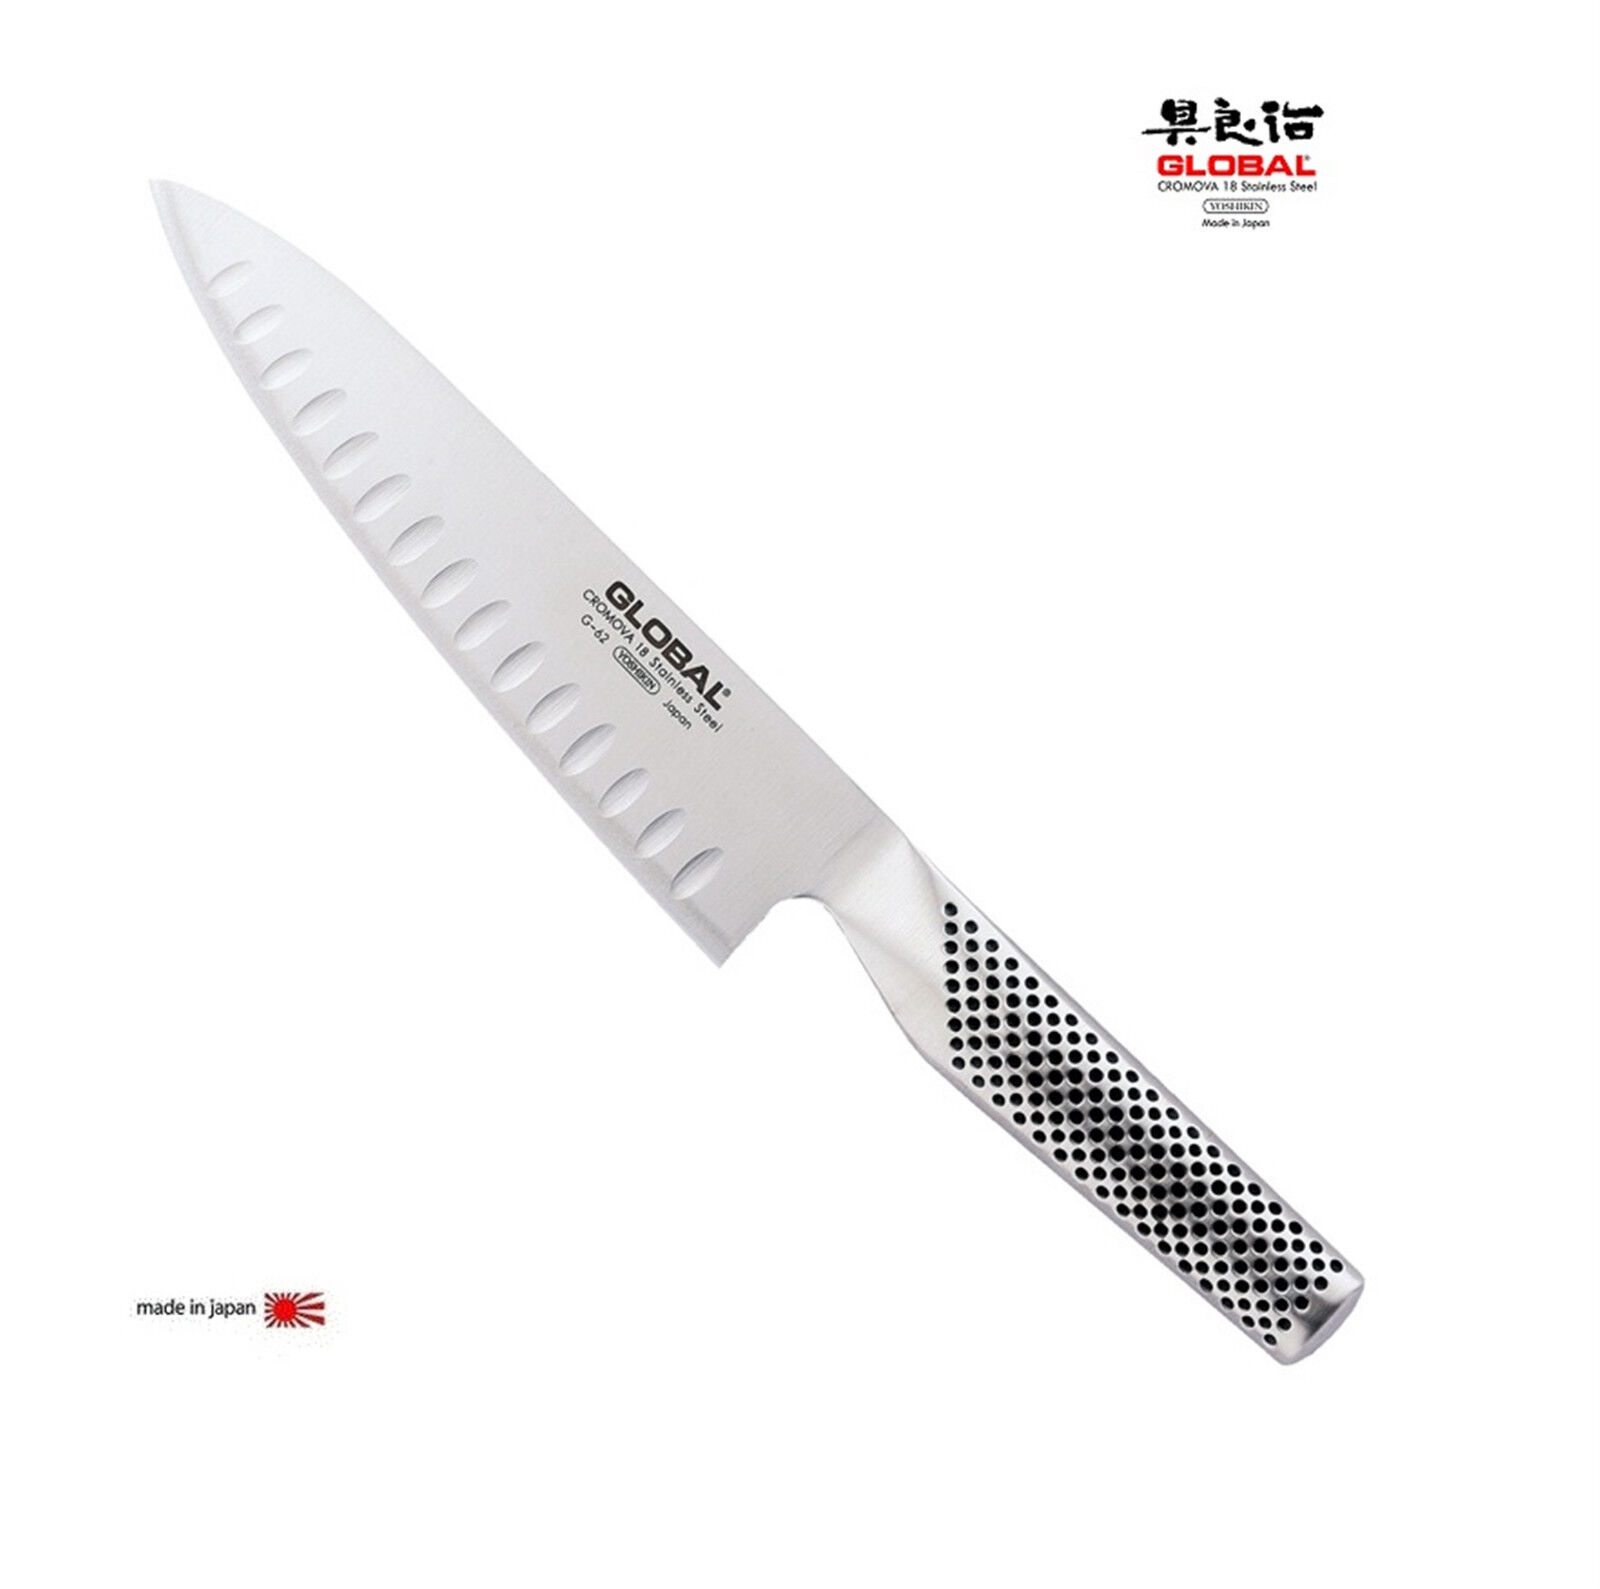 Couteau Global G-62(G78) Cook knife Cannelé - cuisinier (avec rides) 18 cm